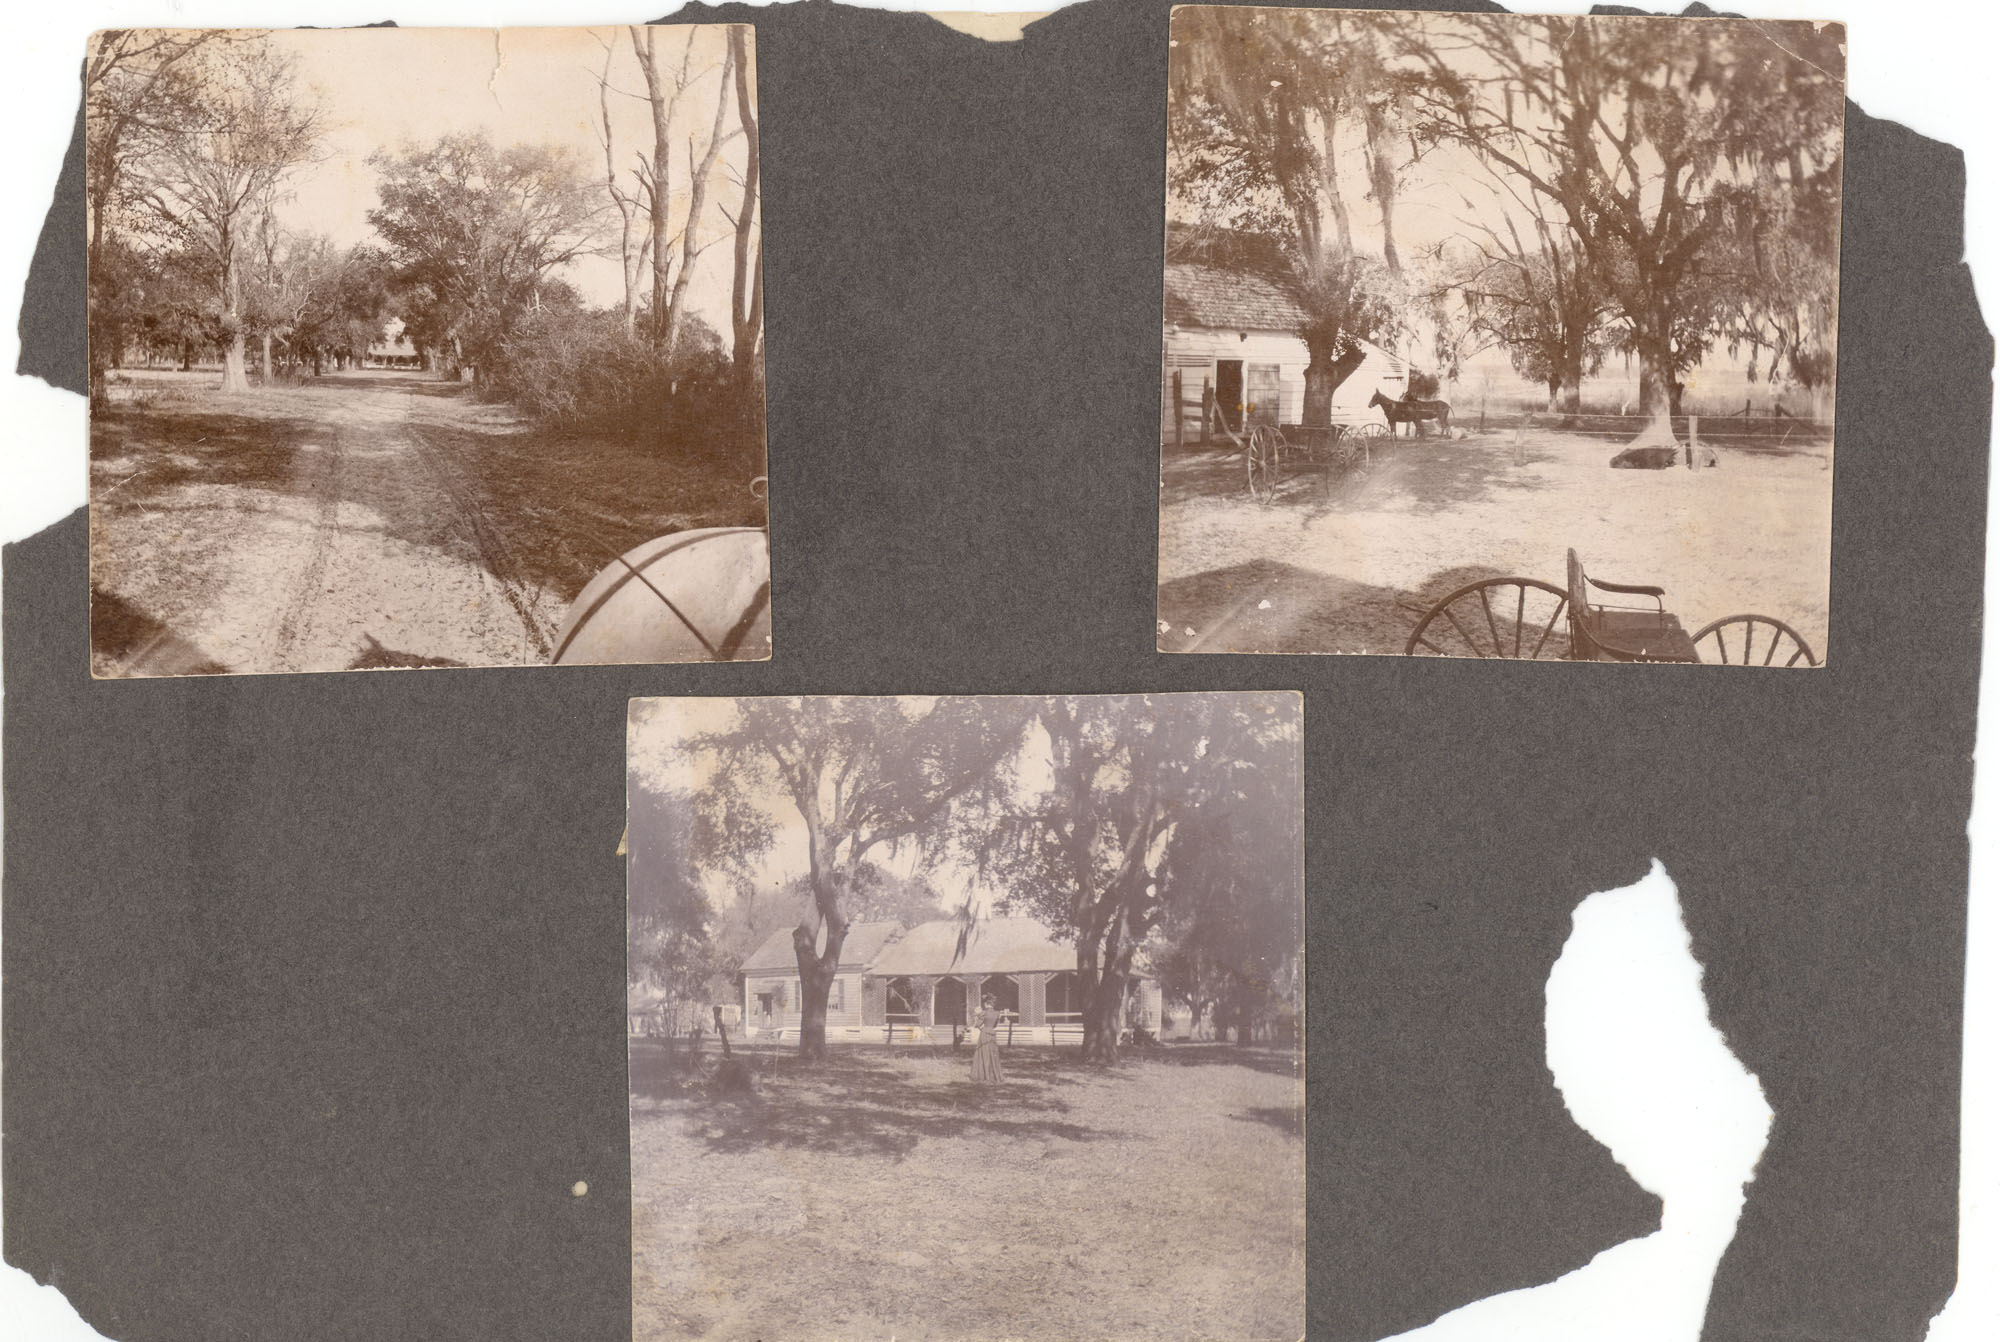 Charleston, Georgetown, and Flat Rock, Page 1 (back): Unidentified Georgetown Plantation